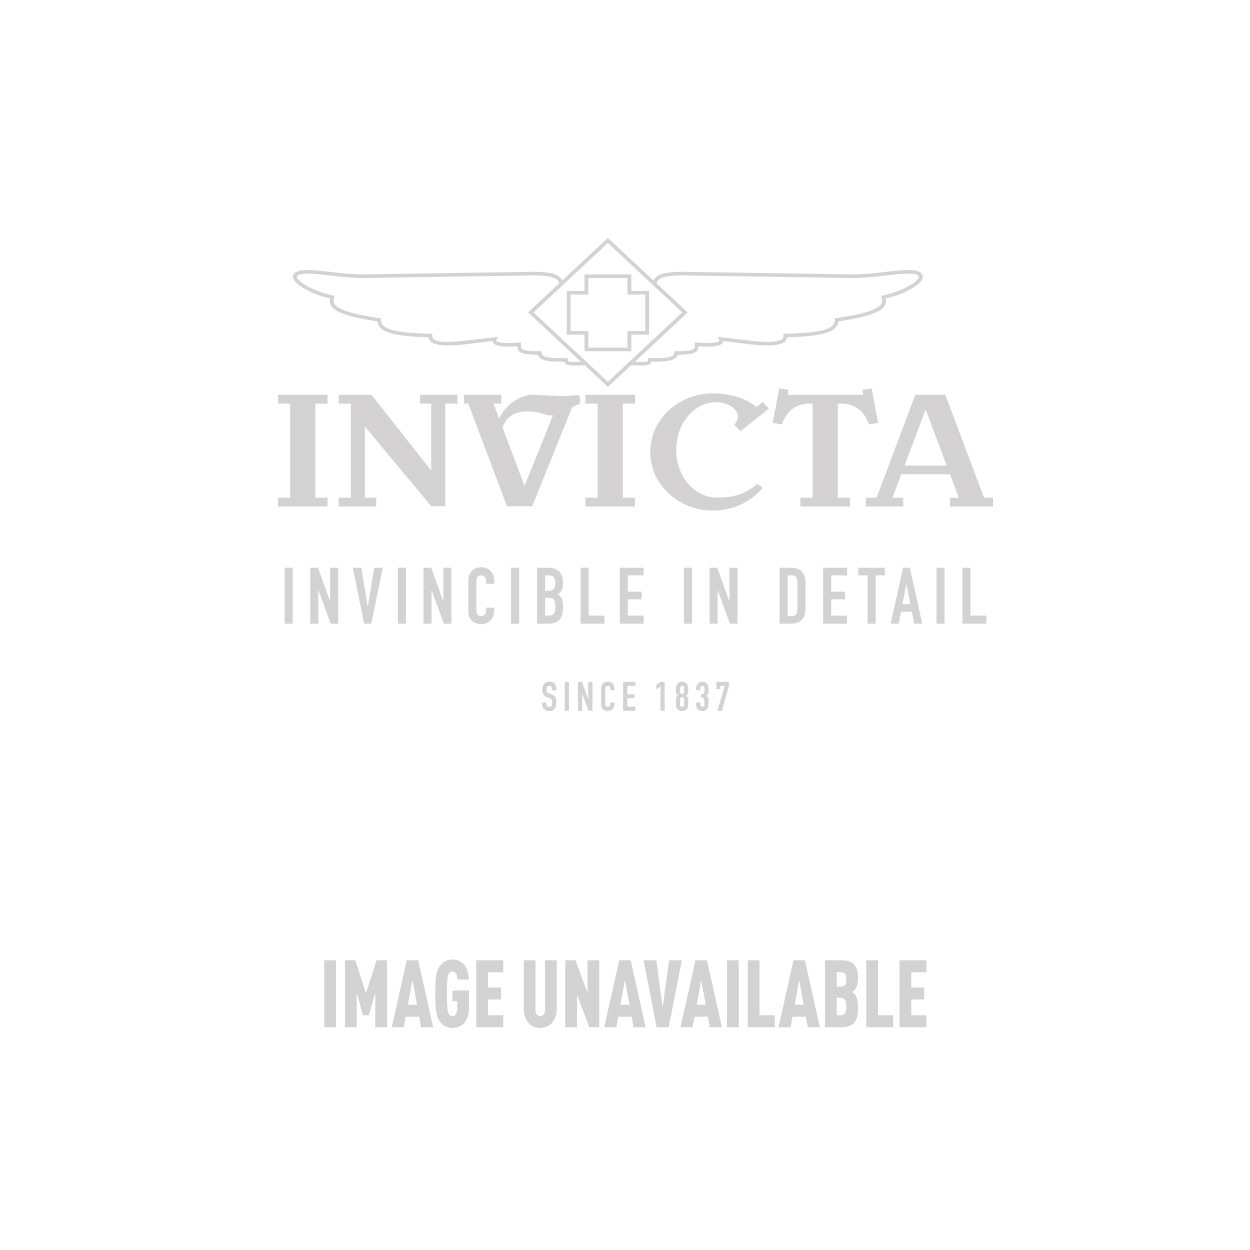 Invicta I-Force Quartz Watch - Blue, Stainless Steel case with Black tone Silicone band - Model 16925